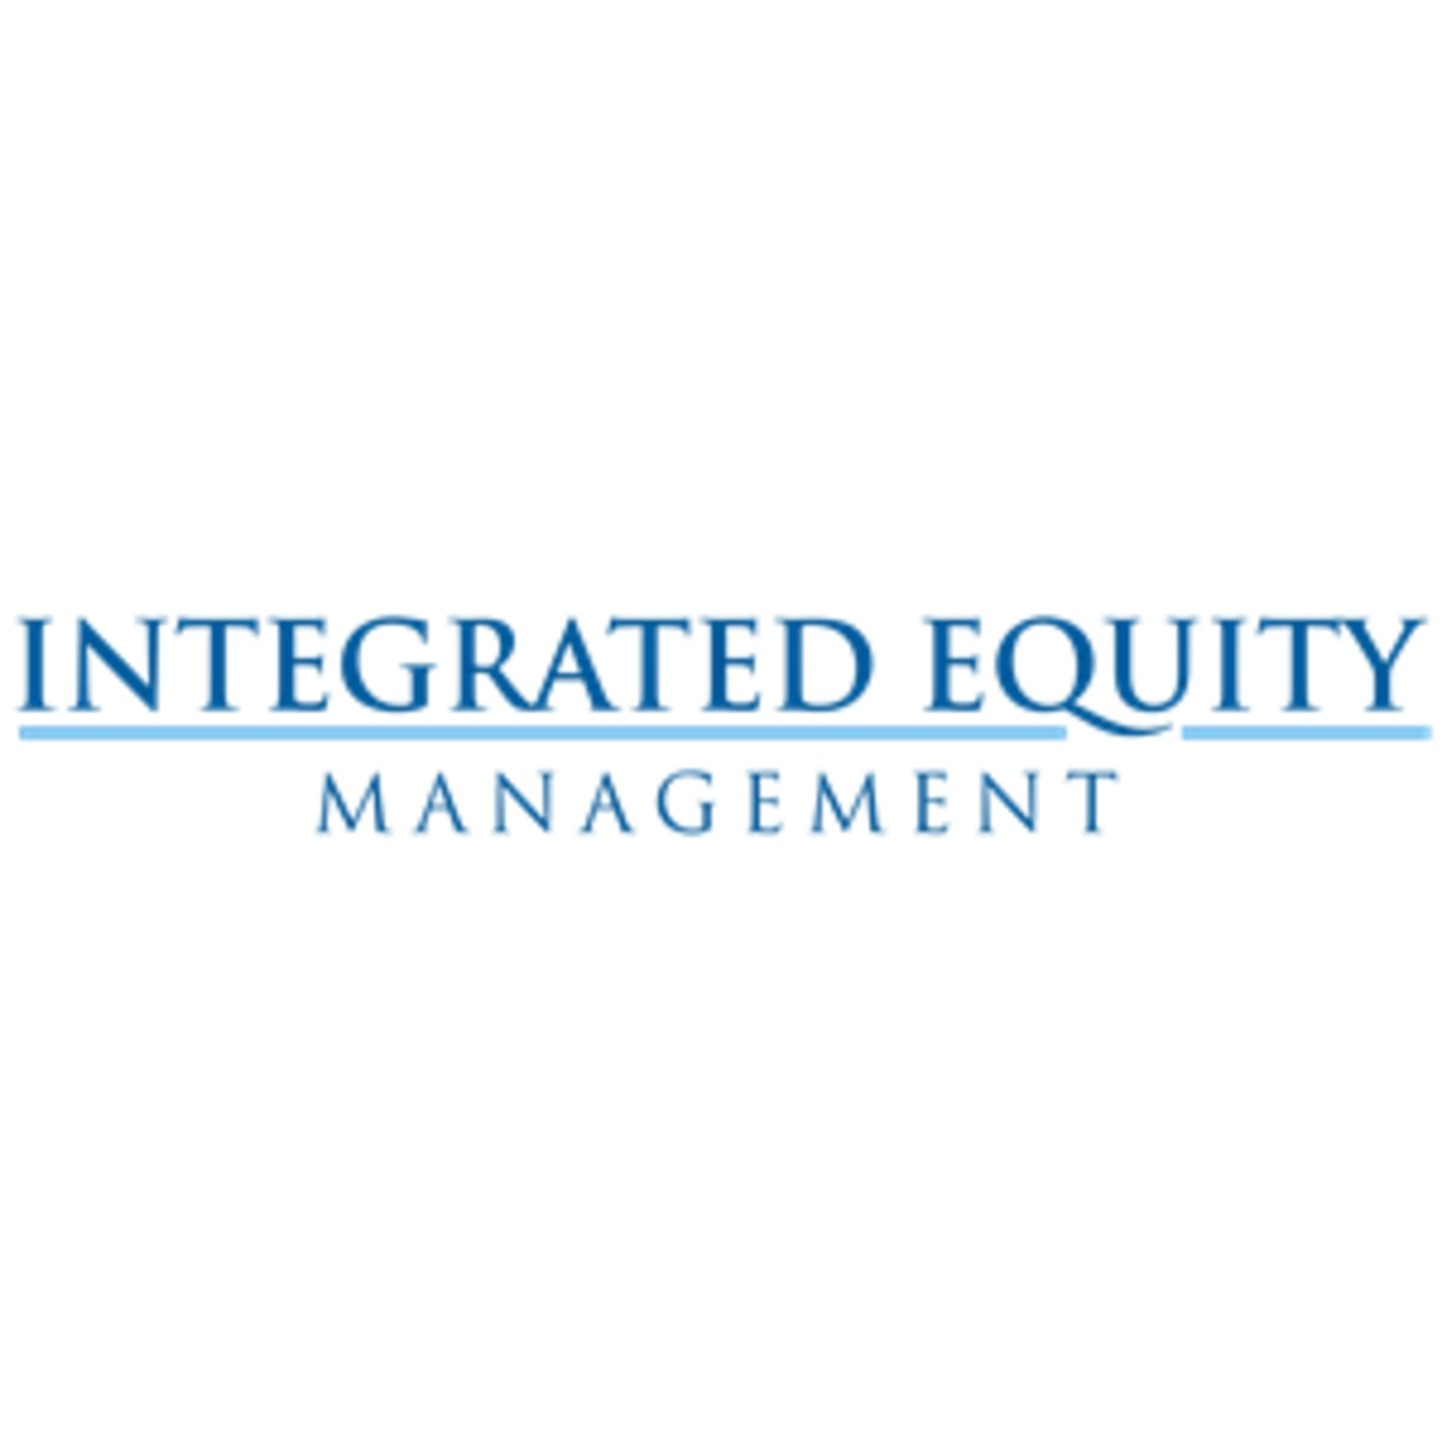 Integrated Equity Management